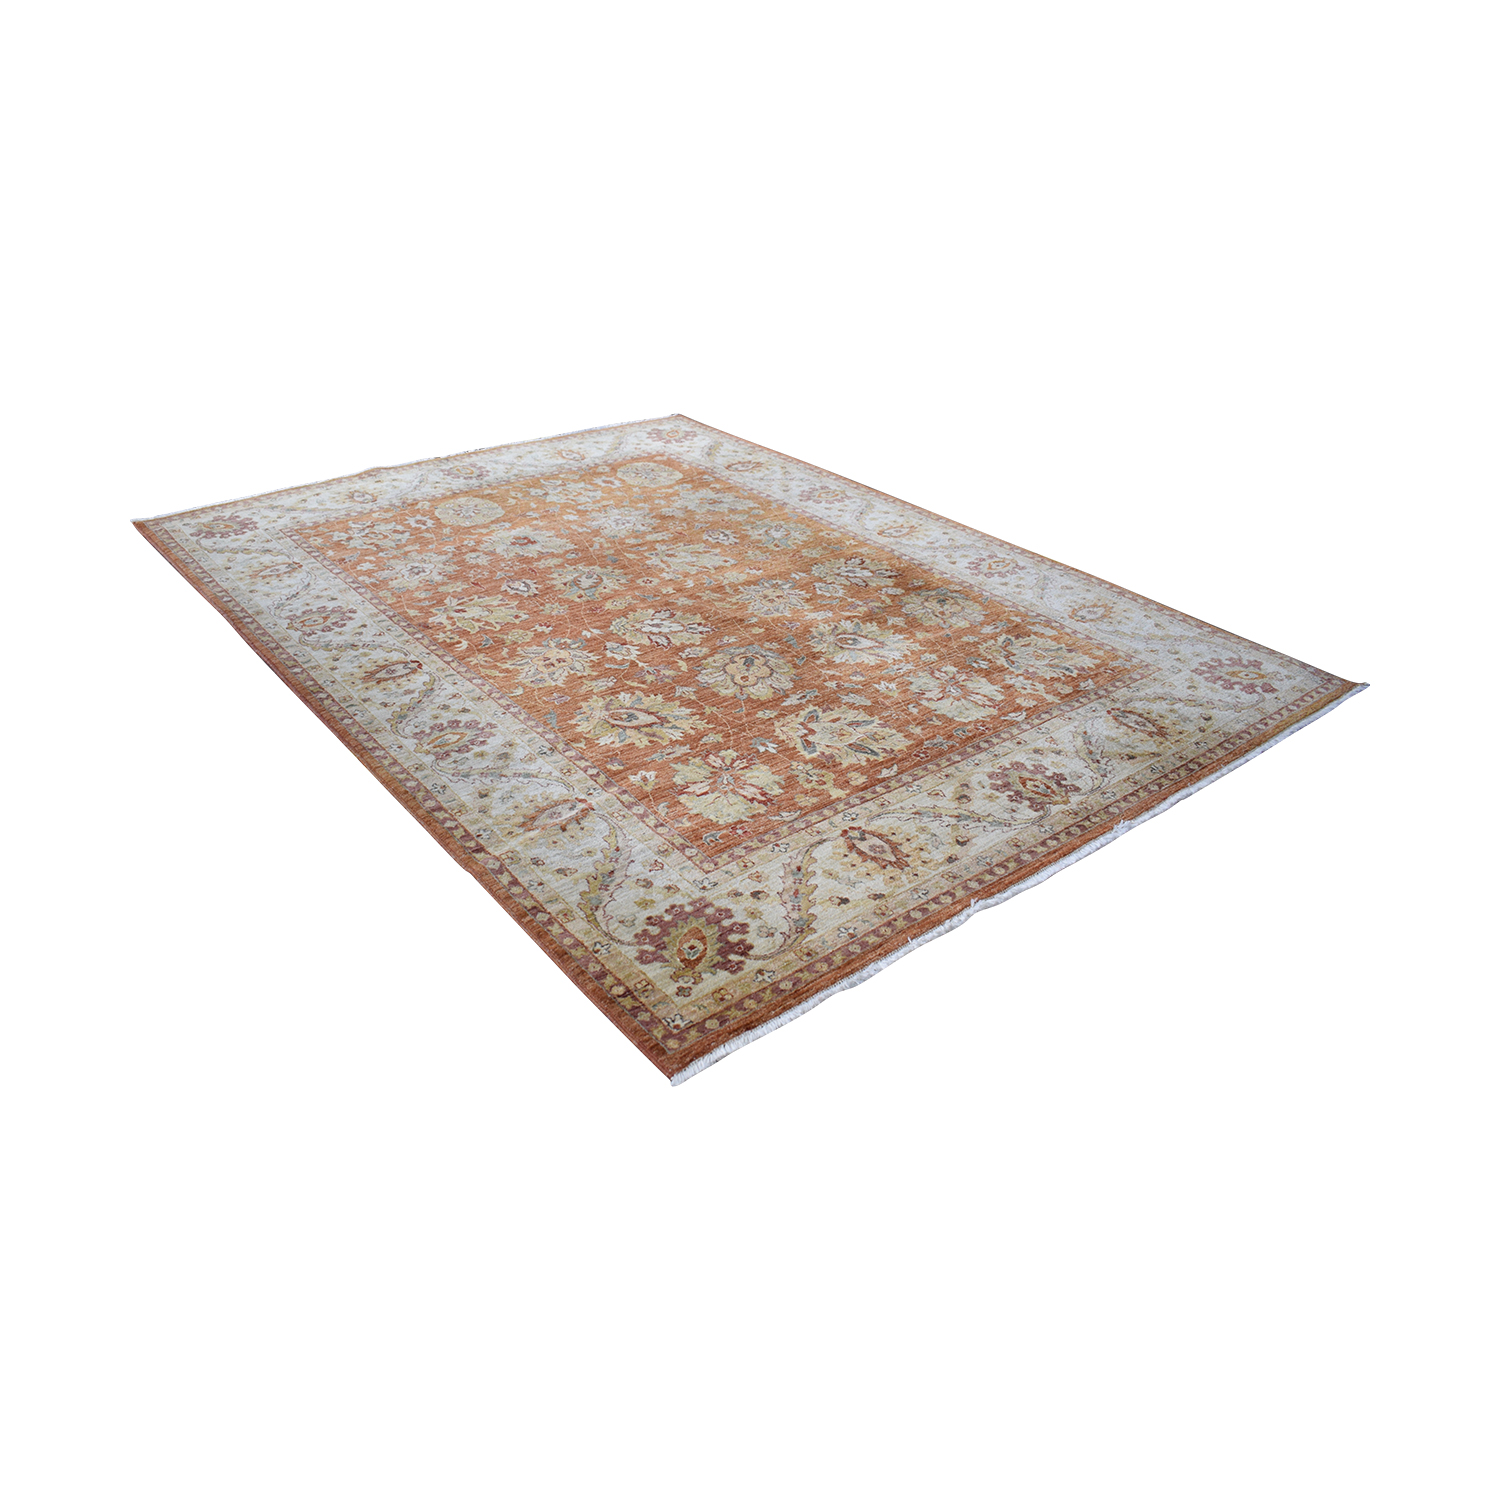 Macy's Macy's Hand Knotted Wool Area Rug Rugs